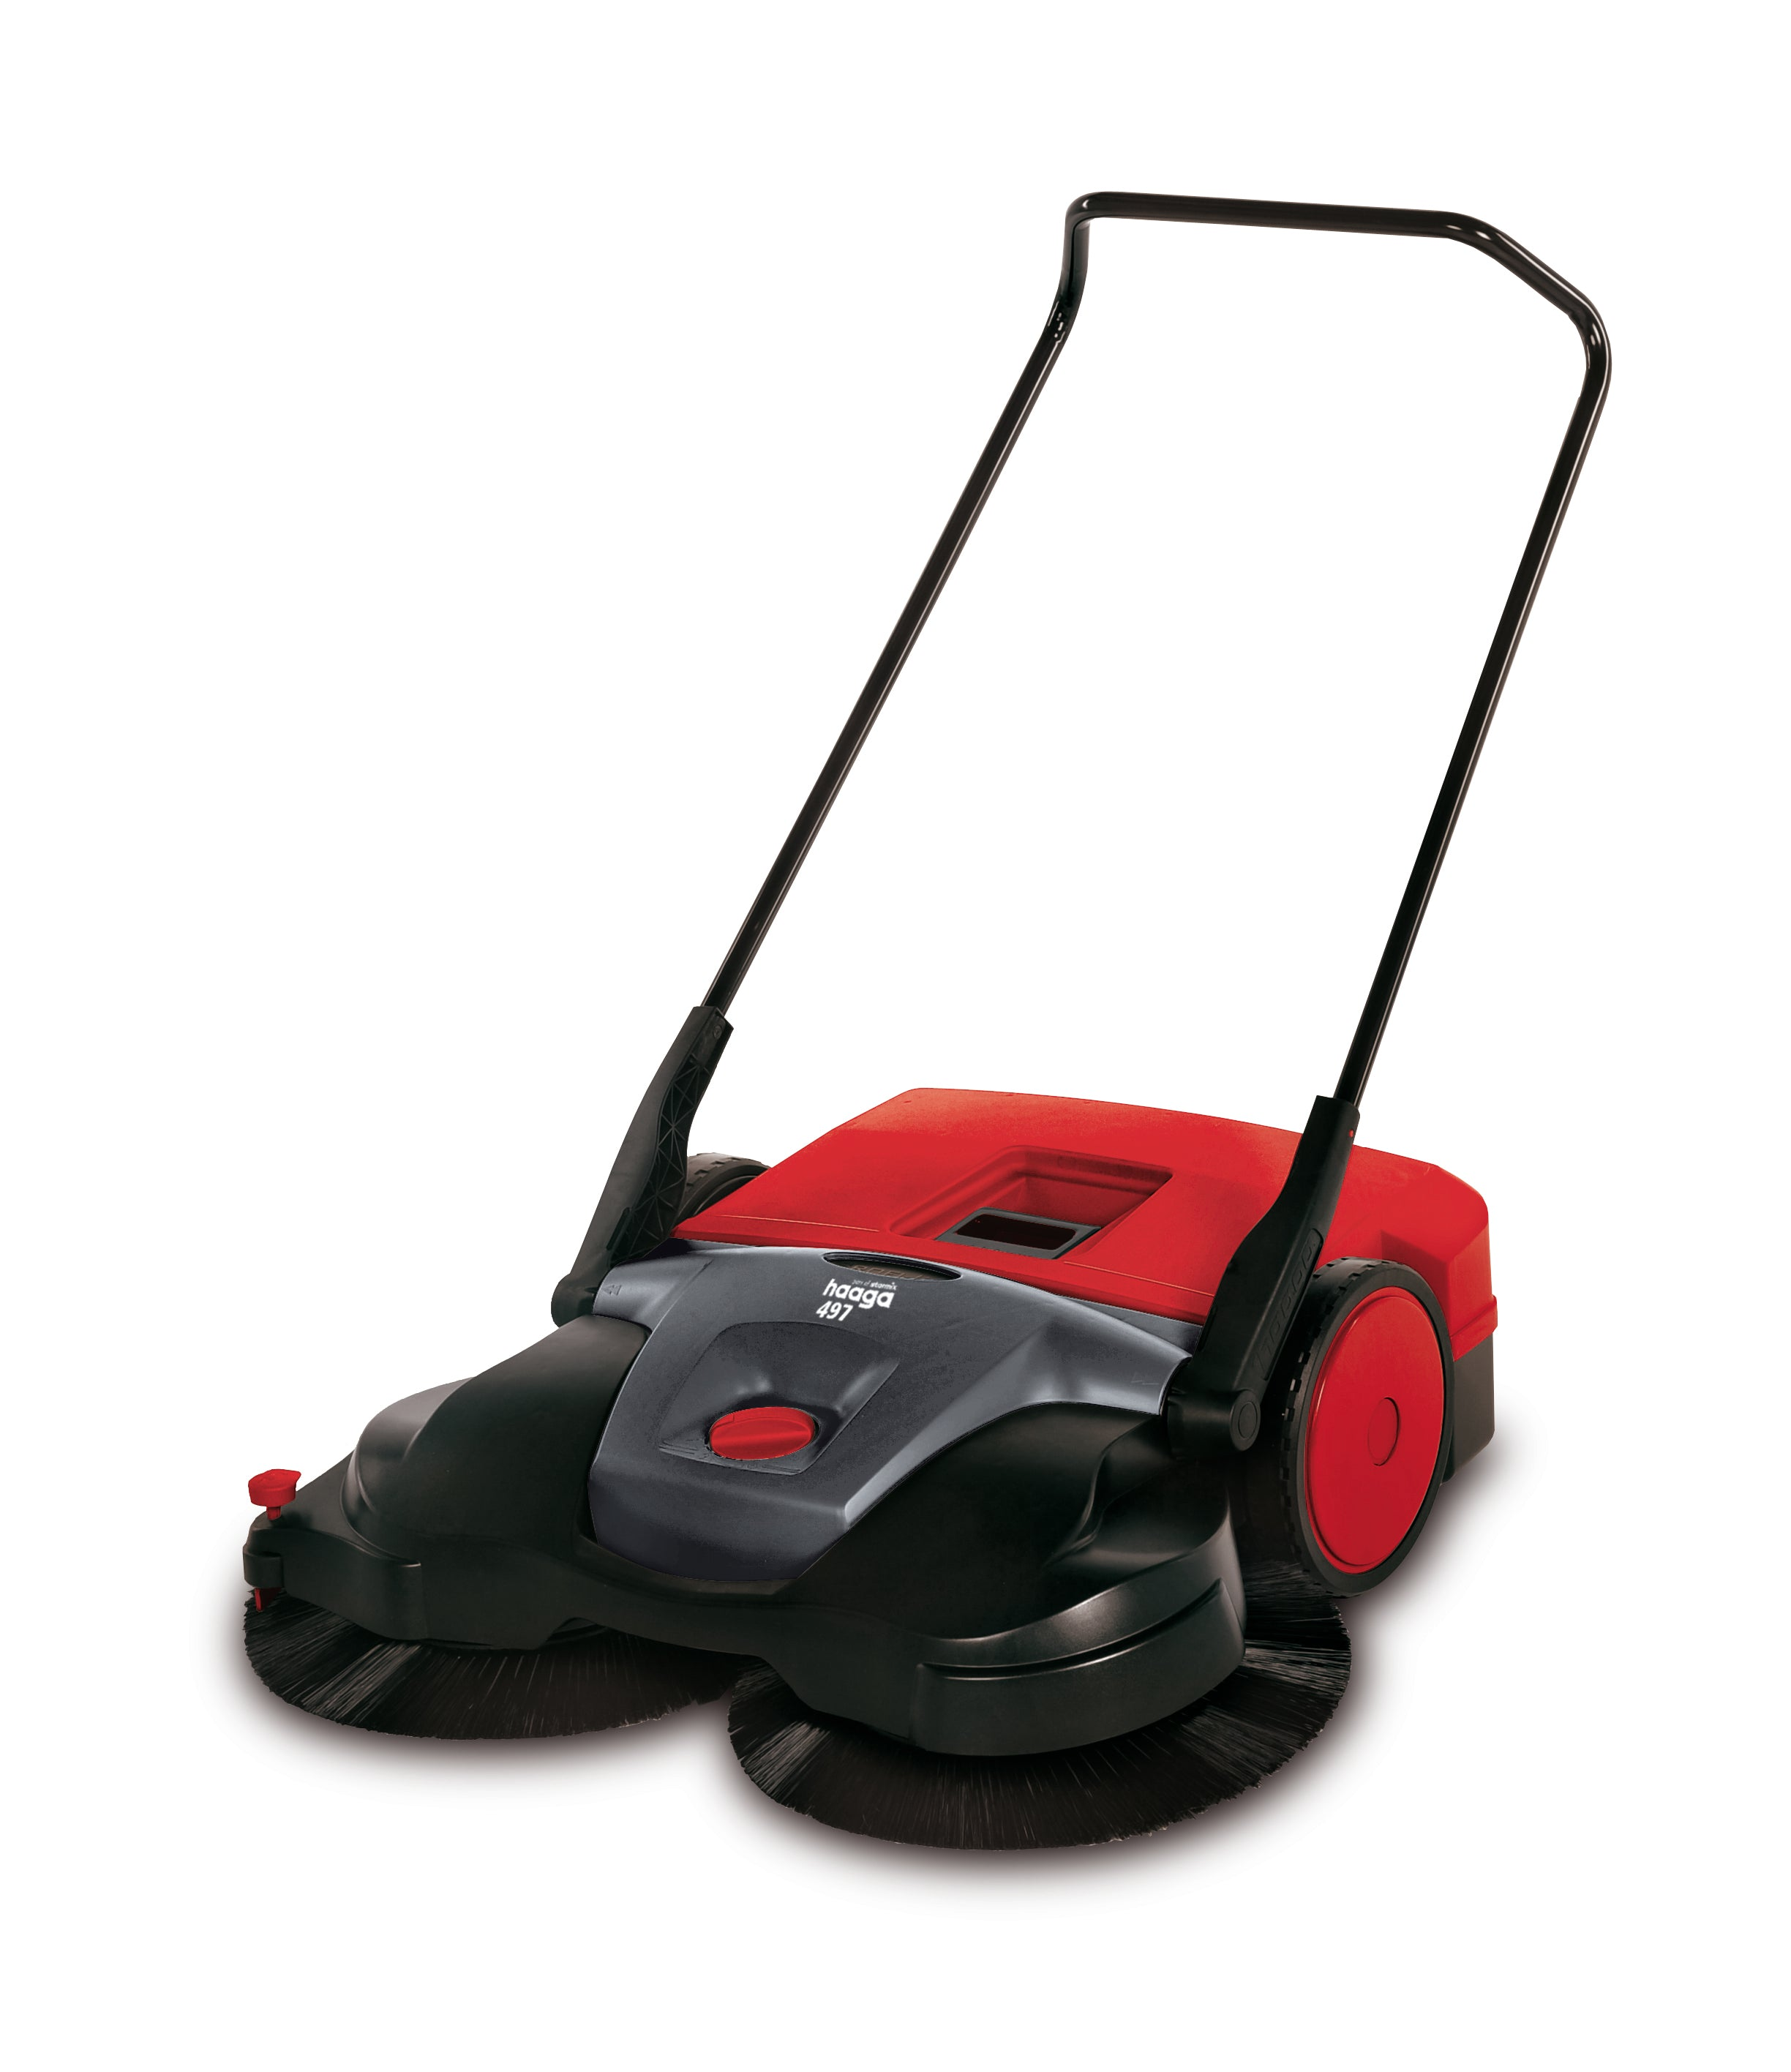 HAAGA SWEEPER 497 PROFI WITH ISWEEP